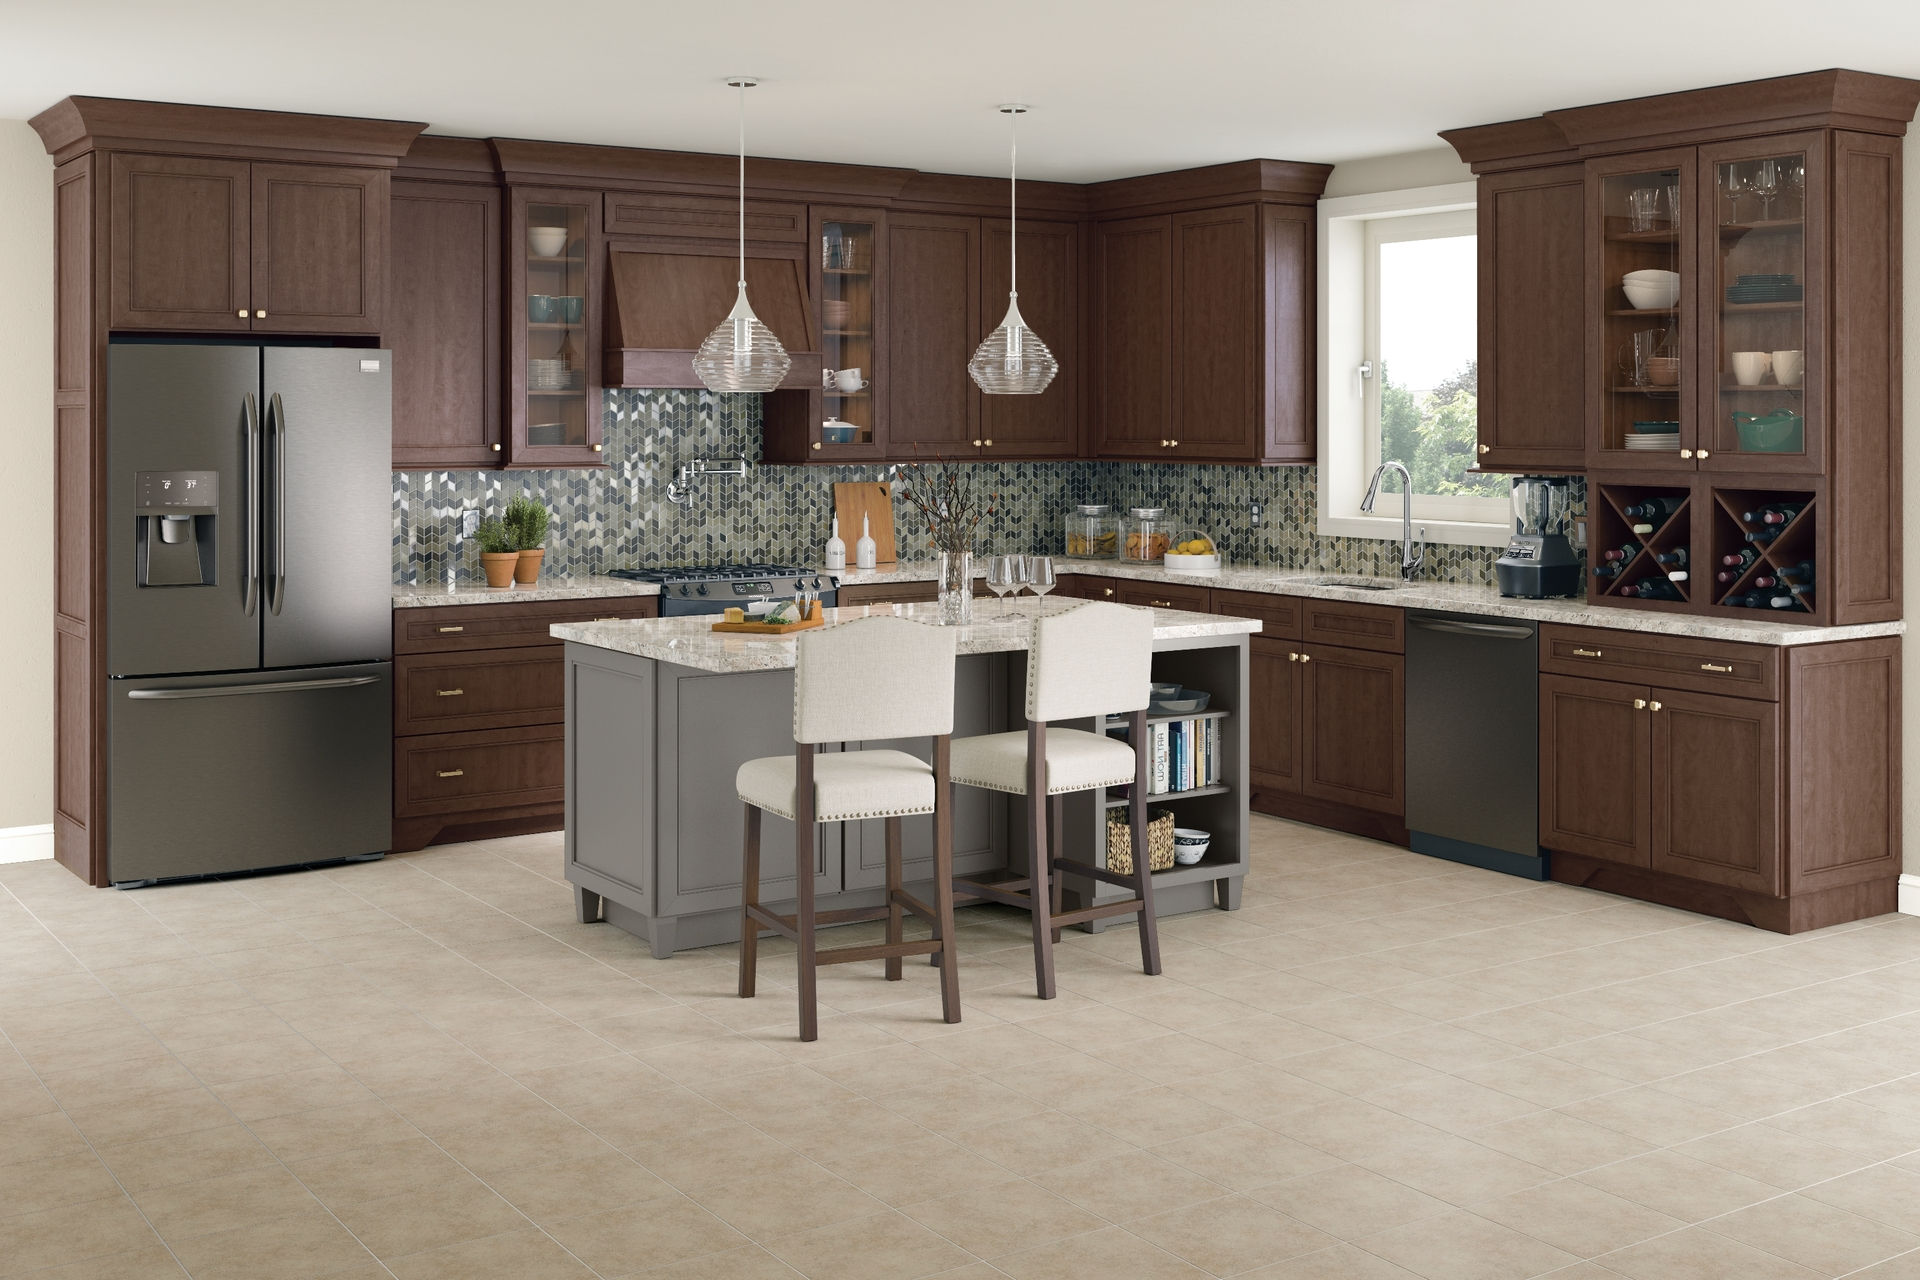 Cardell Kitchen Cabinets - Corbus Maple in Molasses